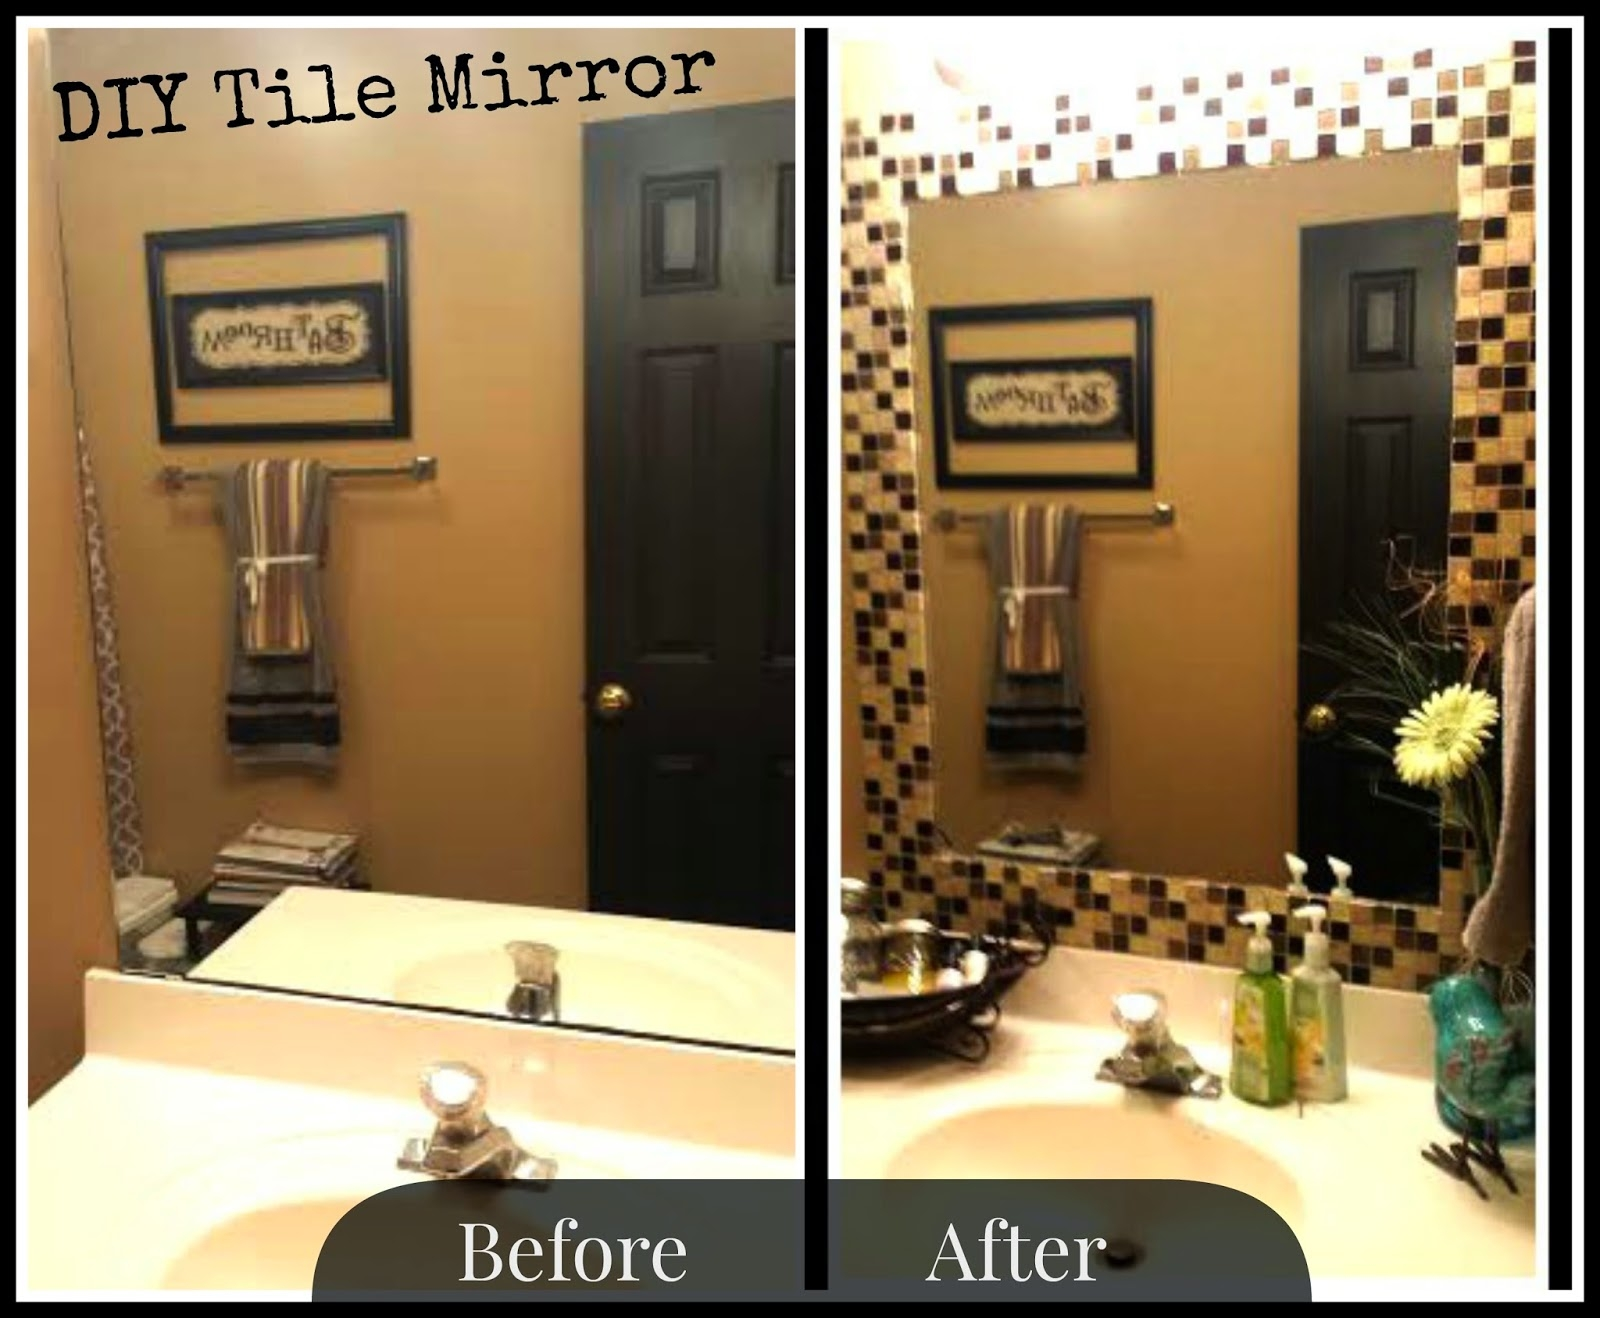 Mosaic Tile Around Bathroom Mirrorproject sapphire diy tile mirror holy moly i may be doing this